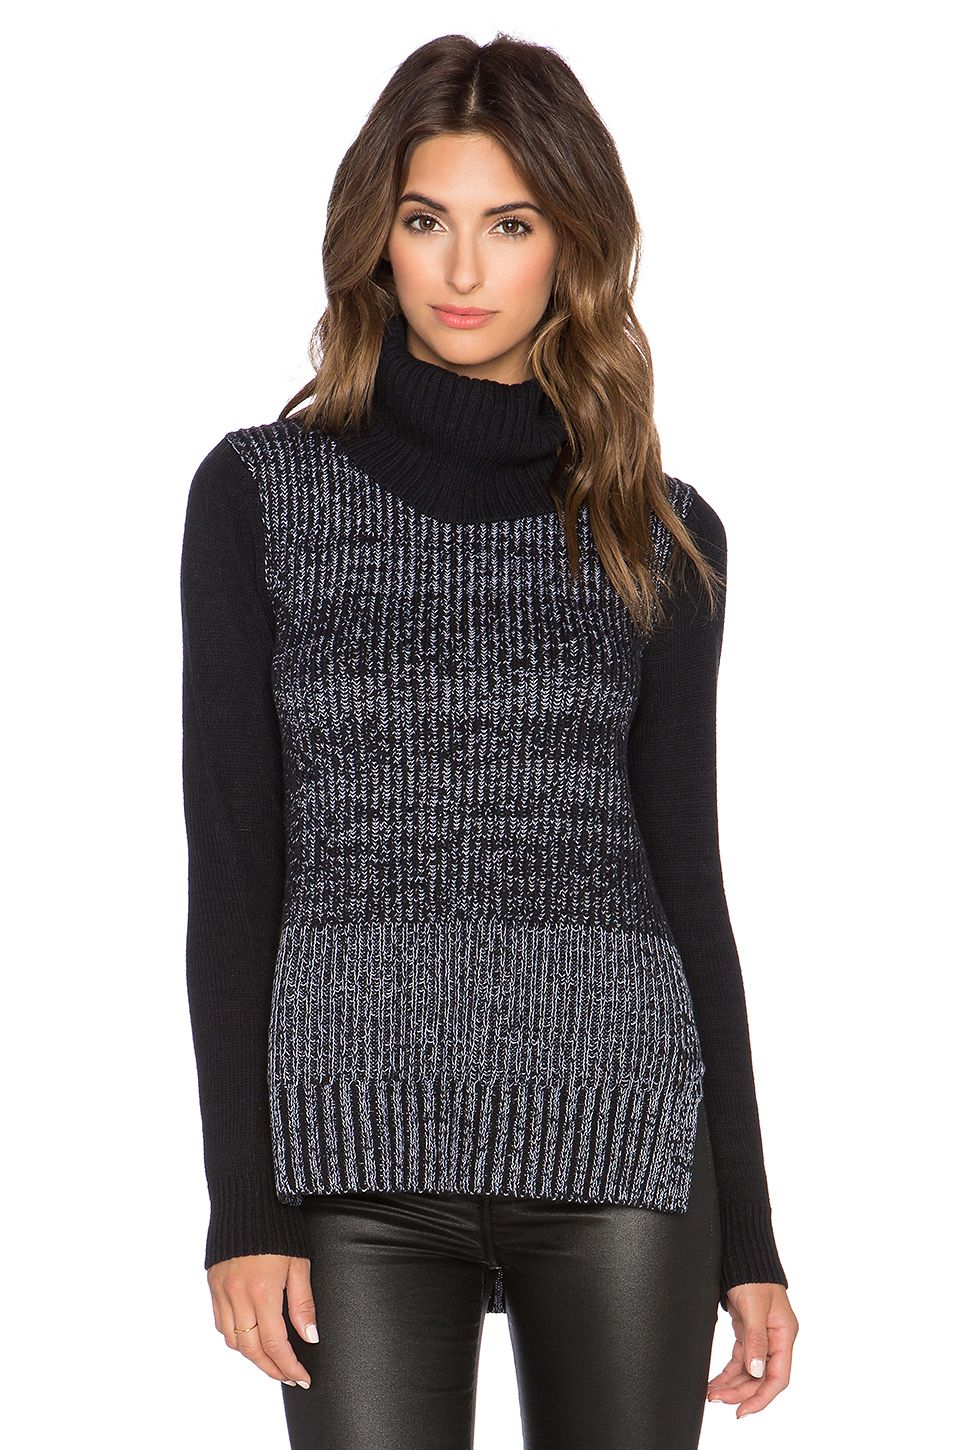 REVOLVEclothing | Ladies Sweater Design | Pinterest | Sweaters ...